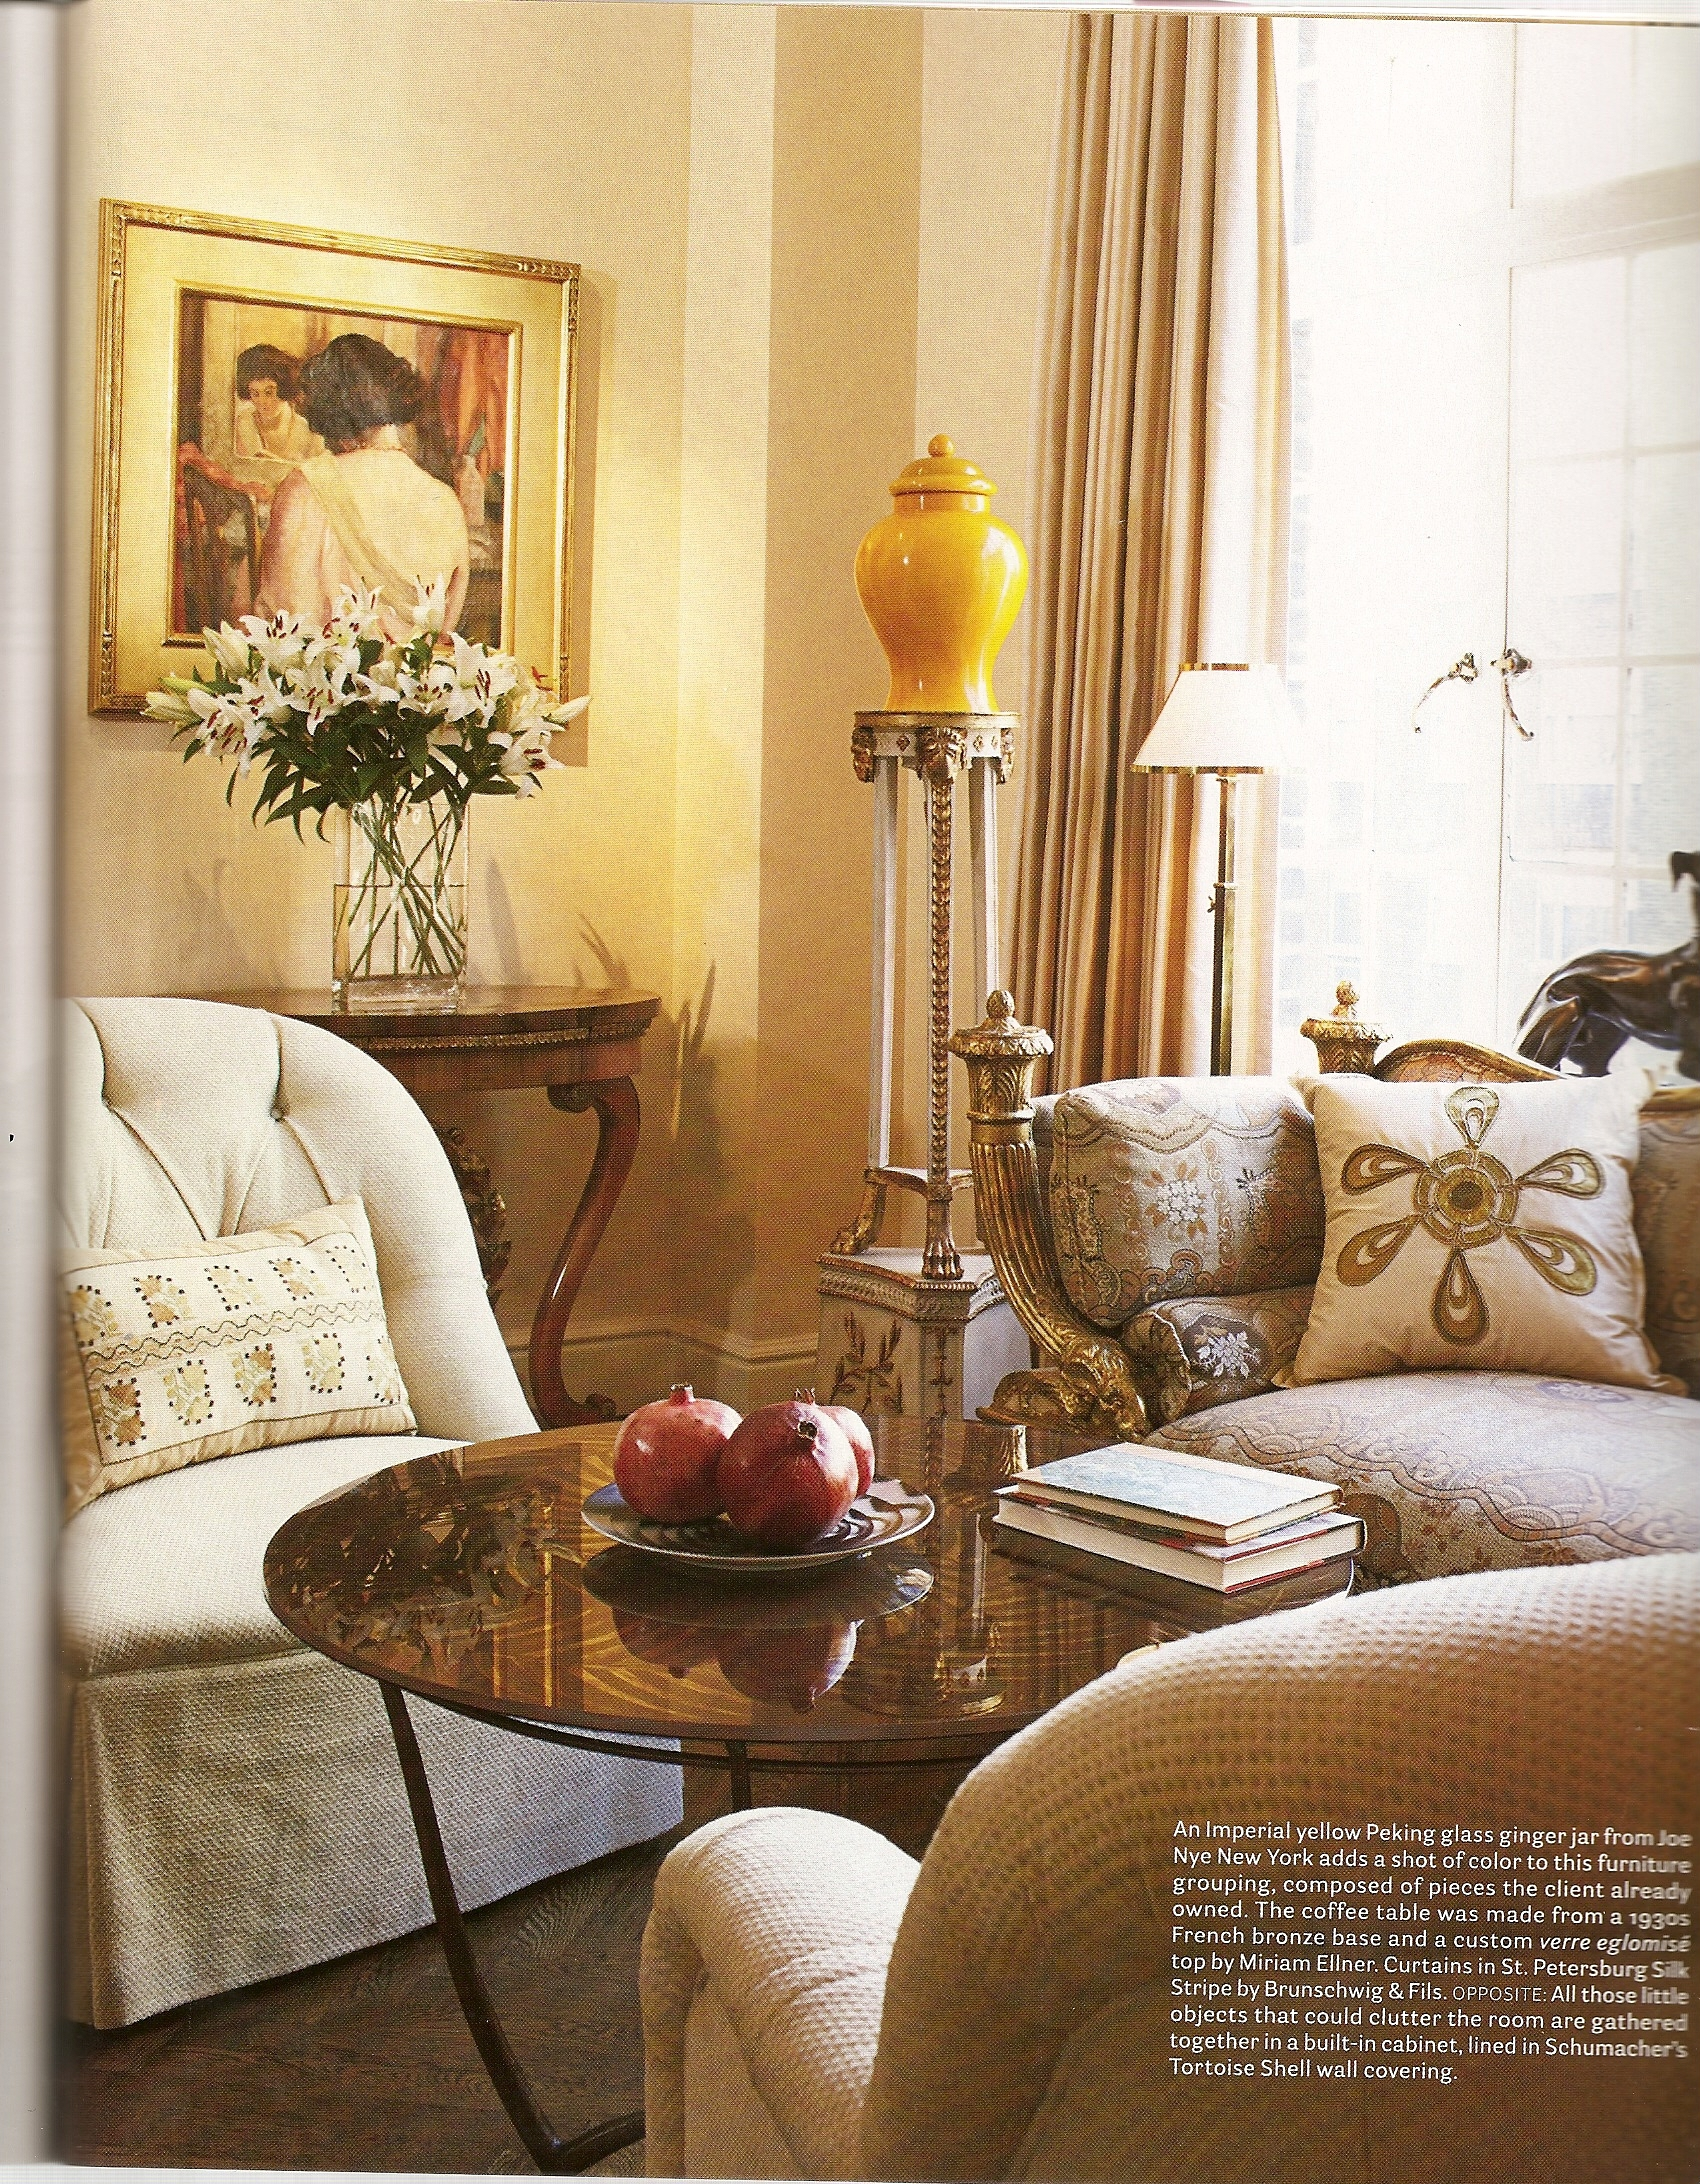 Interior Design Albert Hadley